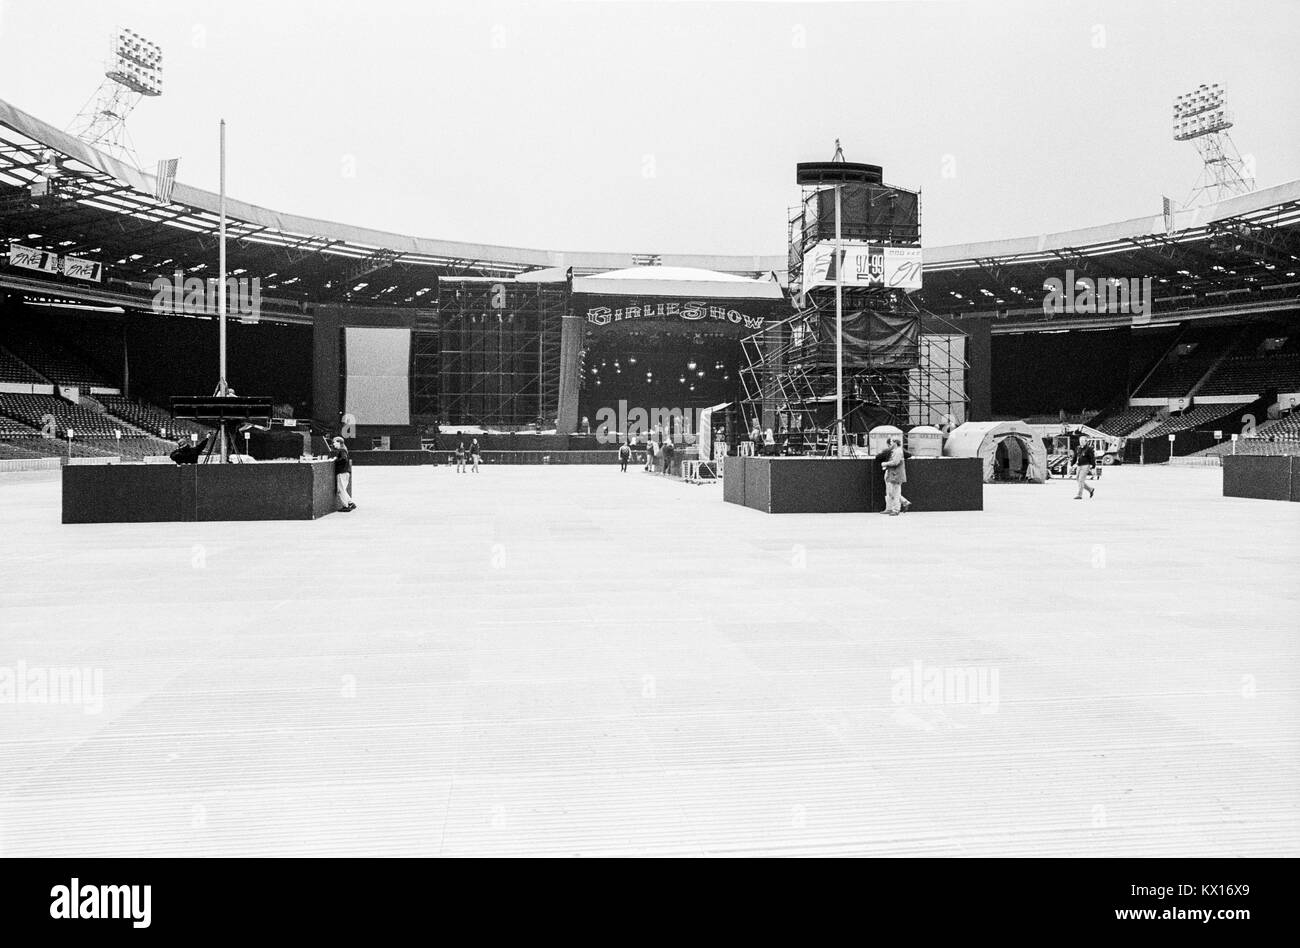 building-the-stage-in-wembley-stadium-fo